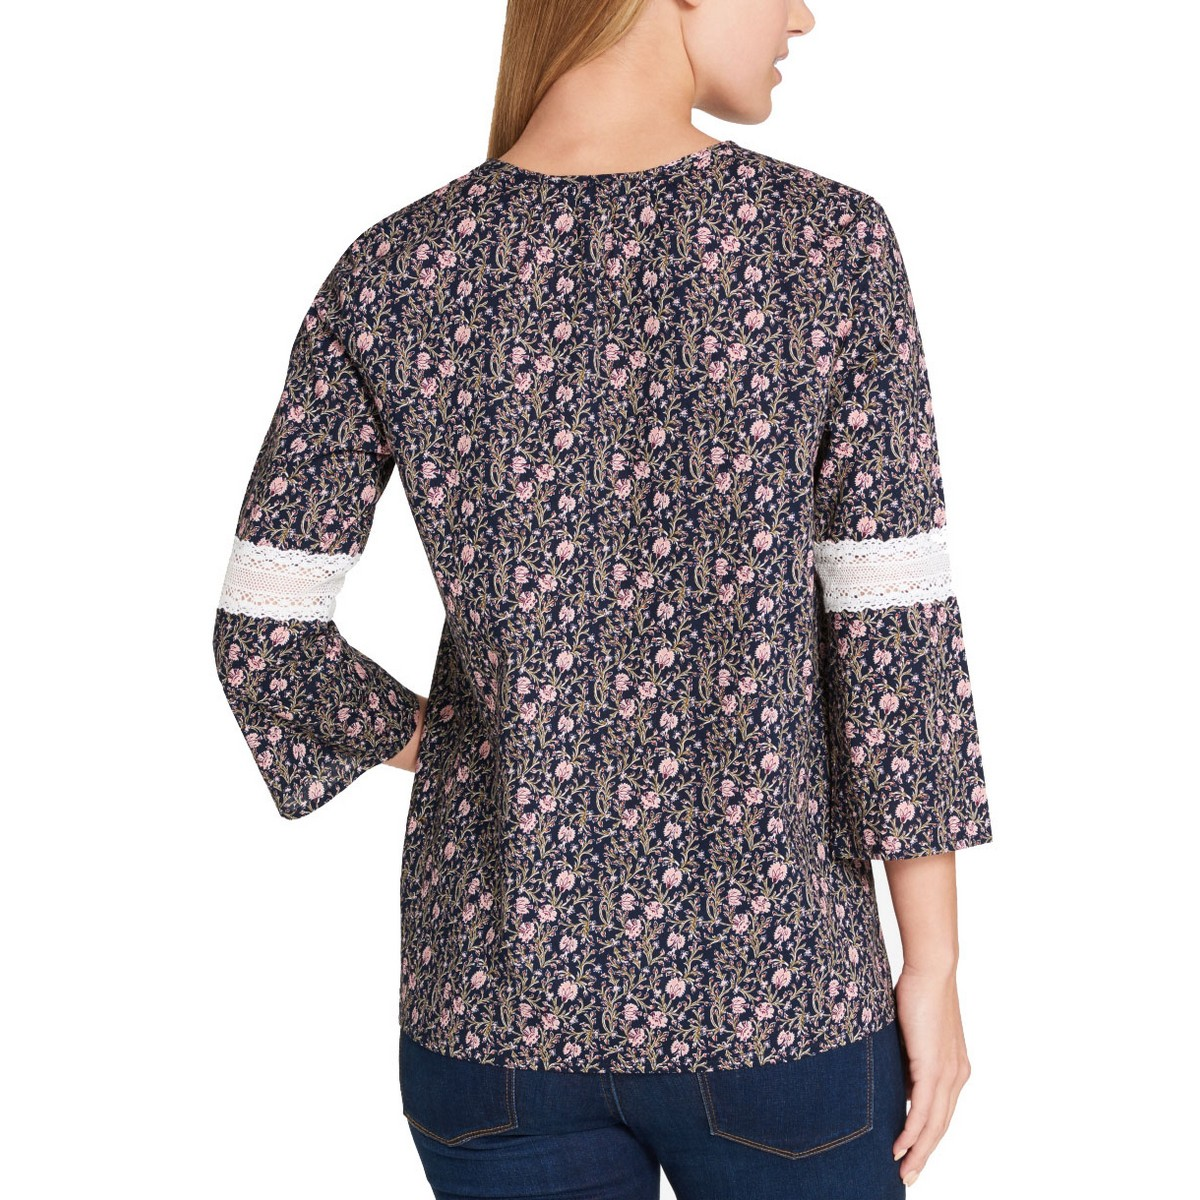 TOMMY-HILFIGER-NEW-Women-039-s-Lace-Detail-Printed-Blouse-Shirt-Top-TEDO thumbnail 8